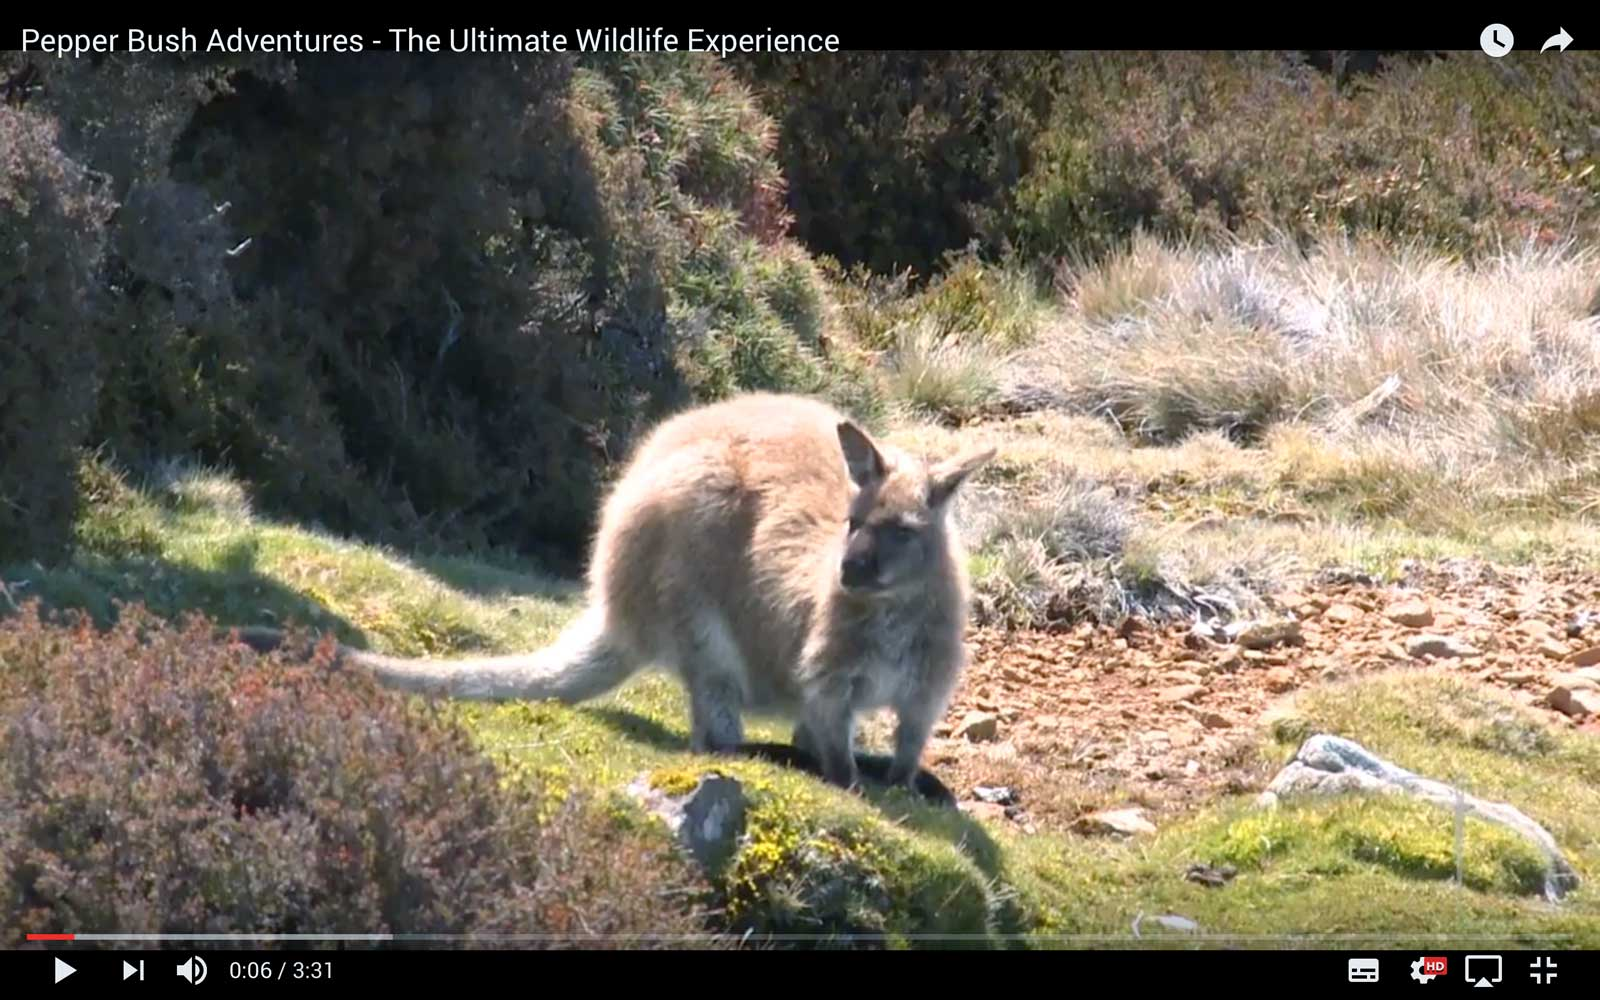 PLAY VIDEO - The Ultimate Wildlife Experience Tasmania